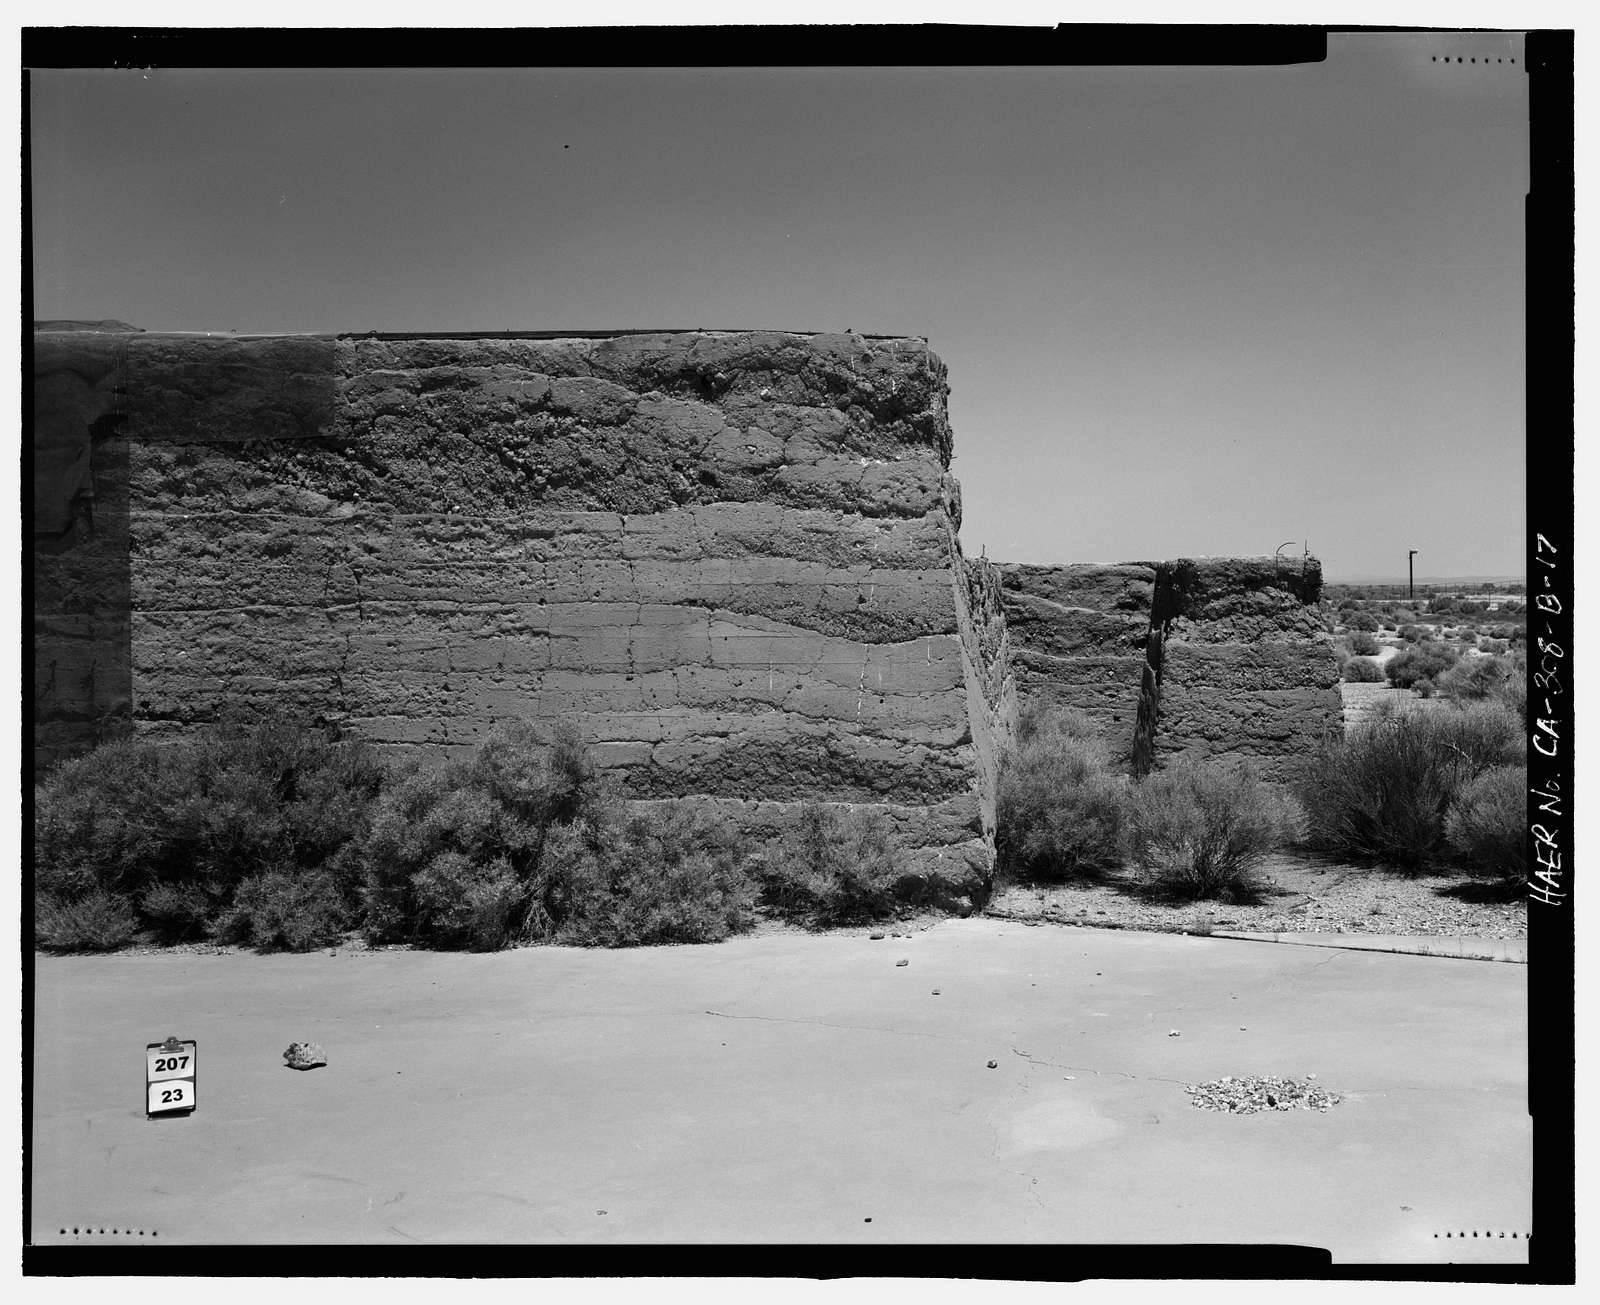 Edwards Air Force Base, South Base, Rammed Earth Aircraft Dispersal Revetments, Western Shore of Rogers Dry Lake, Boron, Kern County, CA